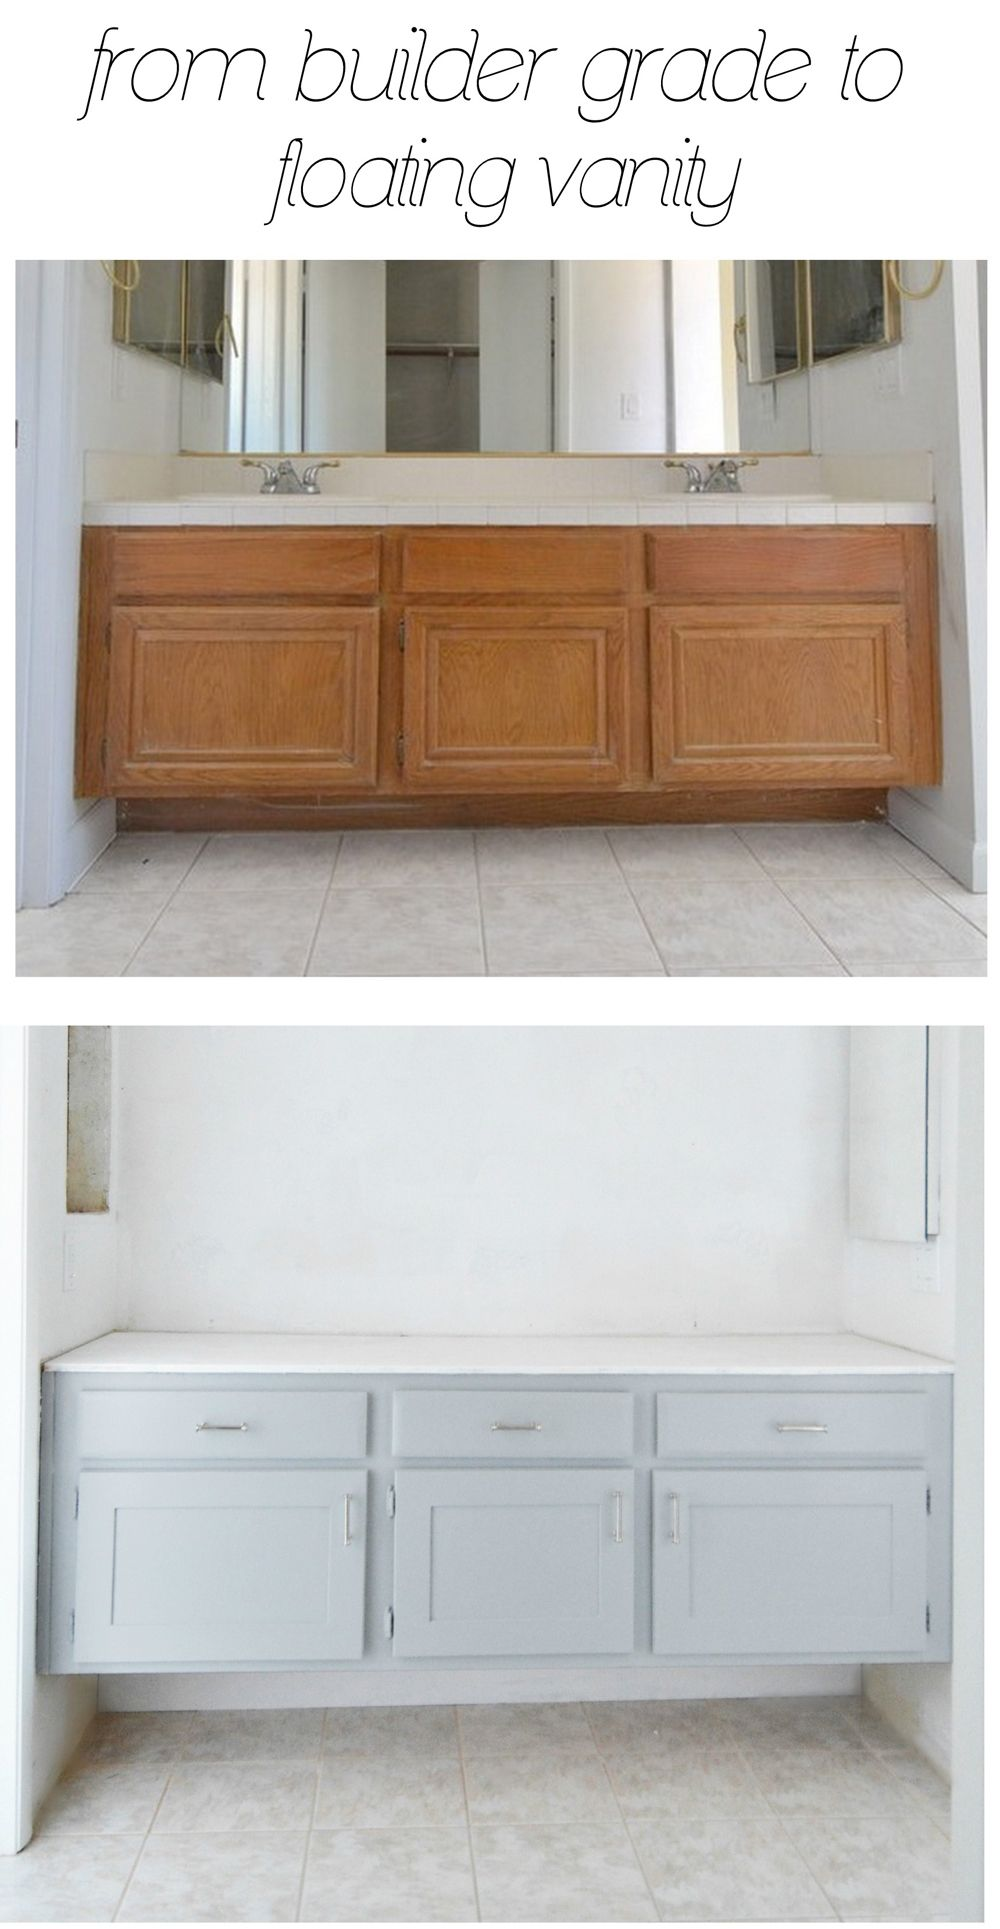 from builder grade to floating vanity | Build it | Pinterest ...